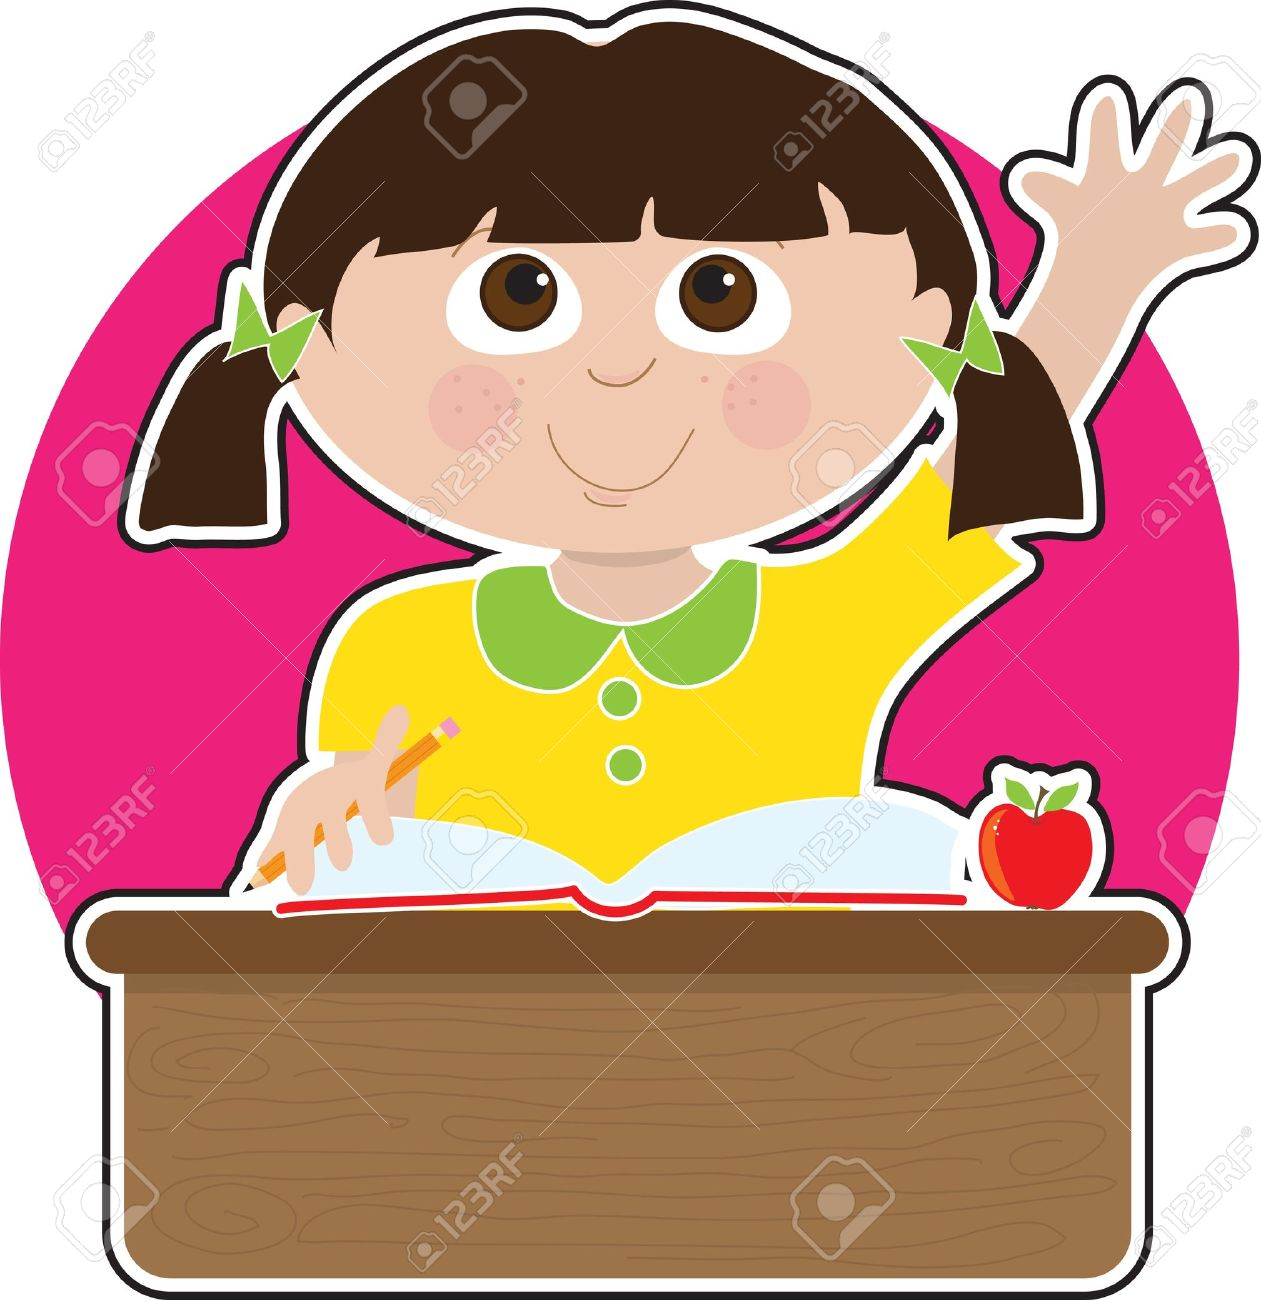 A little girl is raising her hand to answer a question in school - there is a book and an apple on her desk Stock Vector - 10433180